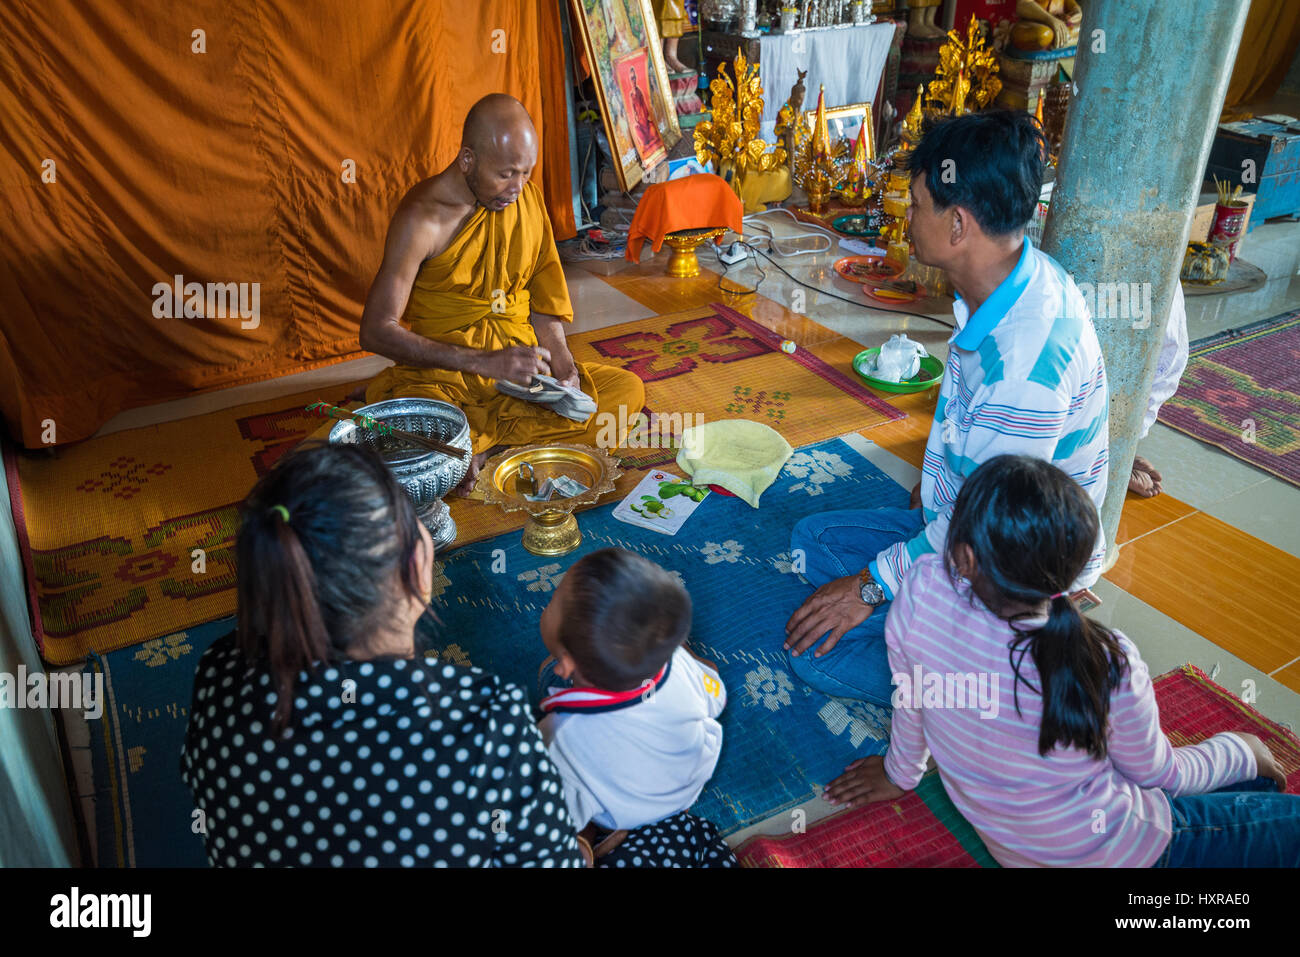 Local people and monk in the Wat Phnom Sampeau temple near Battambang, Cambodia, Asia. - Stock Image